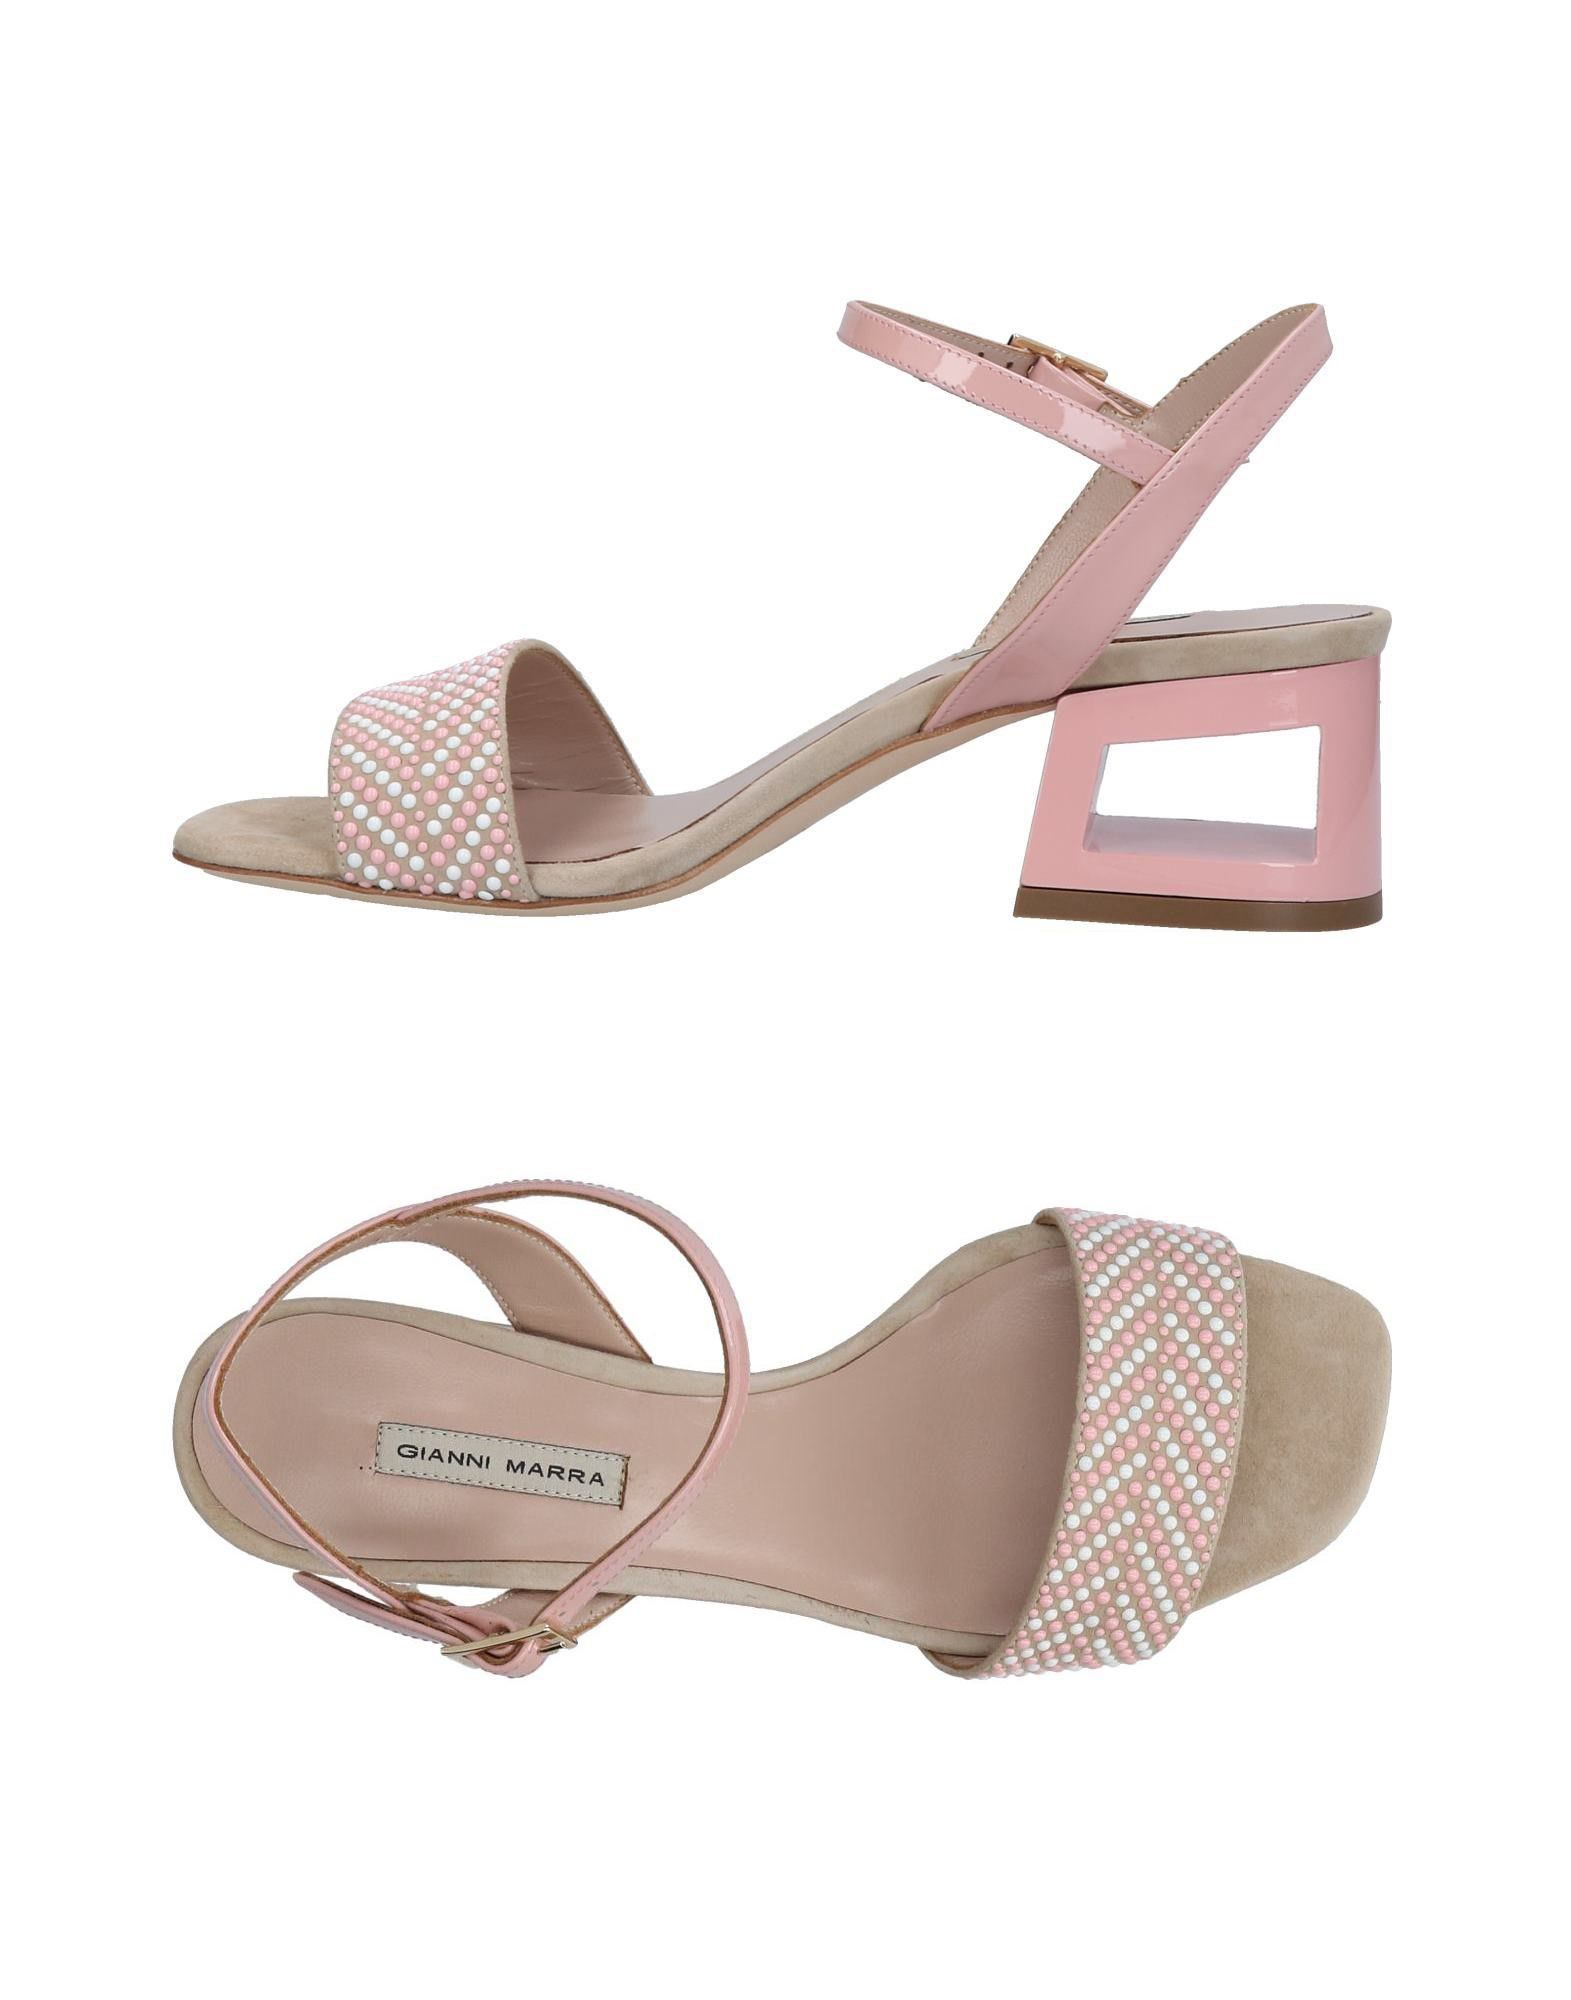 Sandales Gianni Marra Femme - Sandales Gianni Marra sur